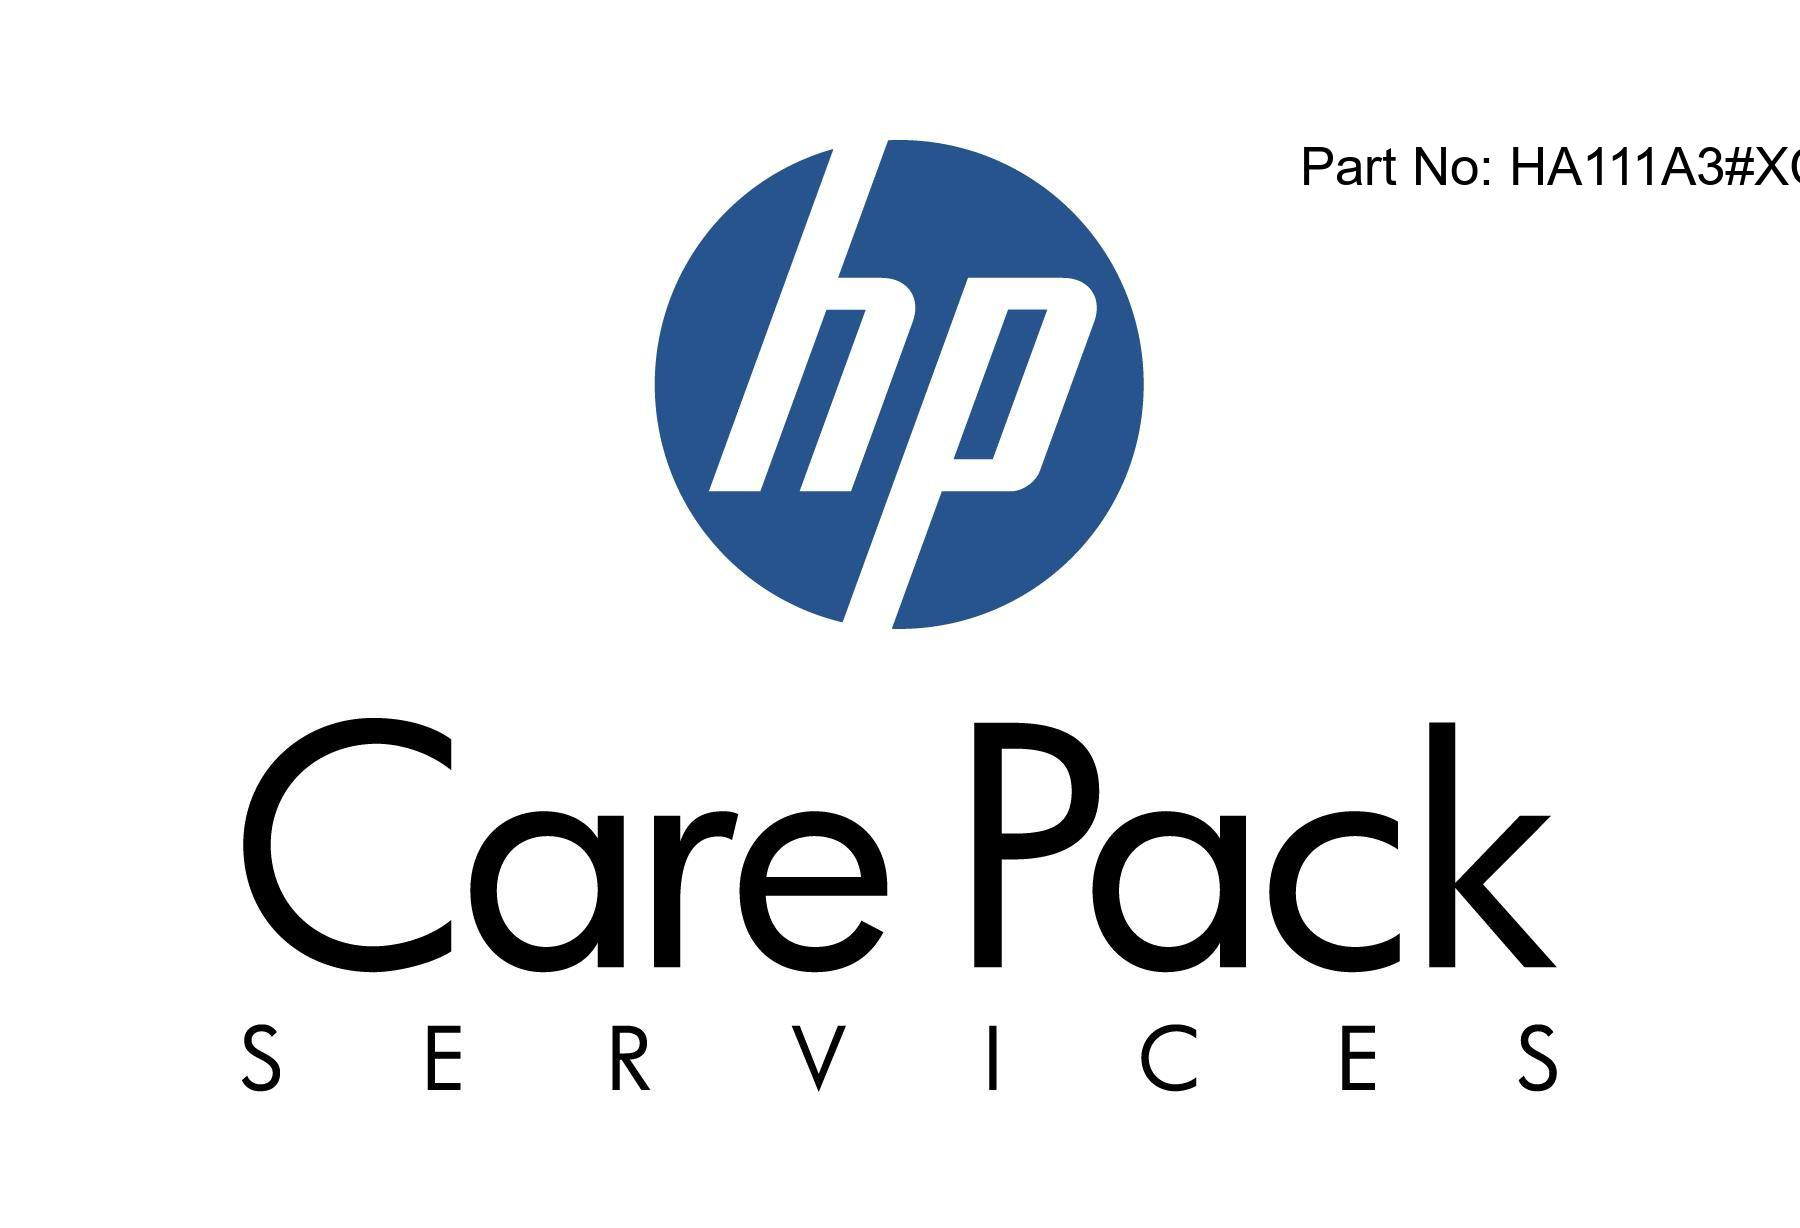 Proactive 24 - Technical support - for HPE 3PAR 8440 Priority Optimization - 8 drives - phone consulting - 3 years - 24x7 - response time: 2 h